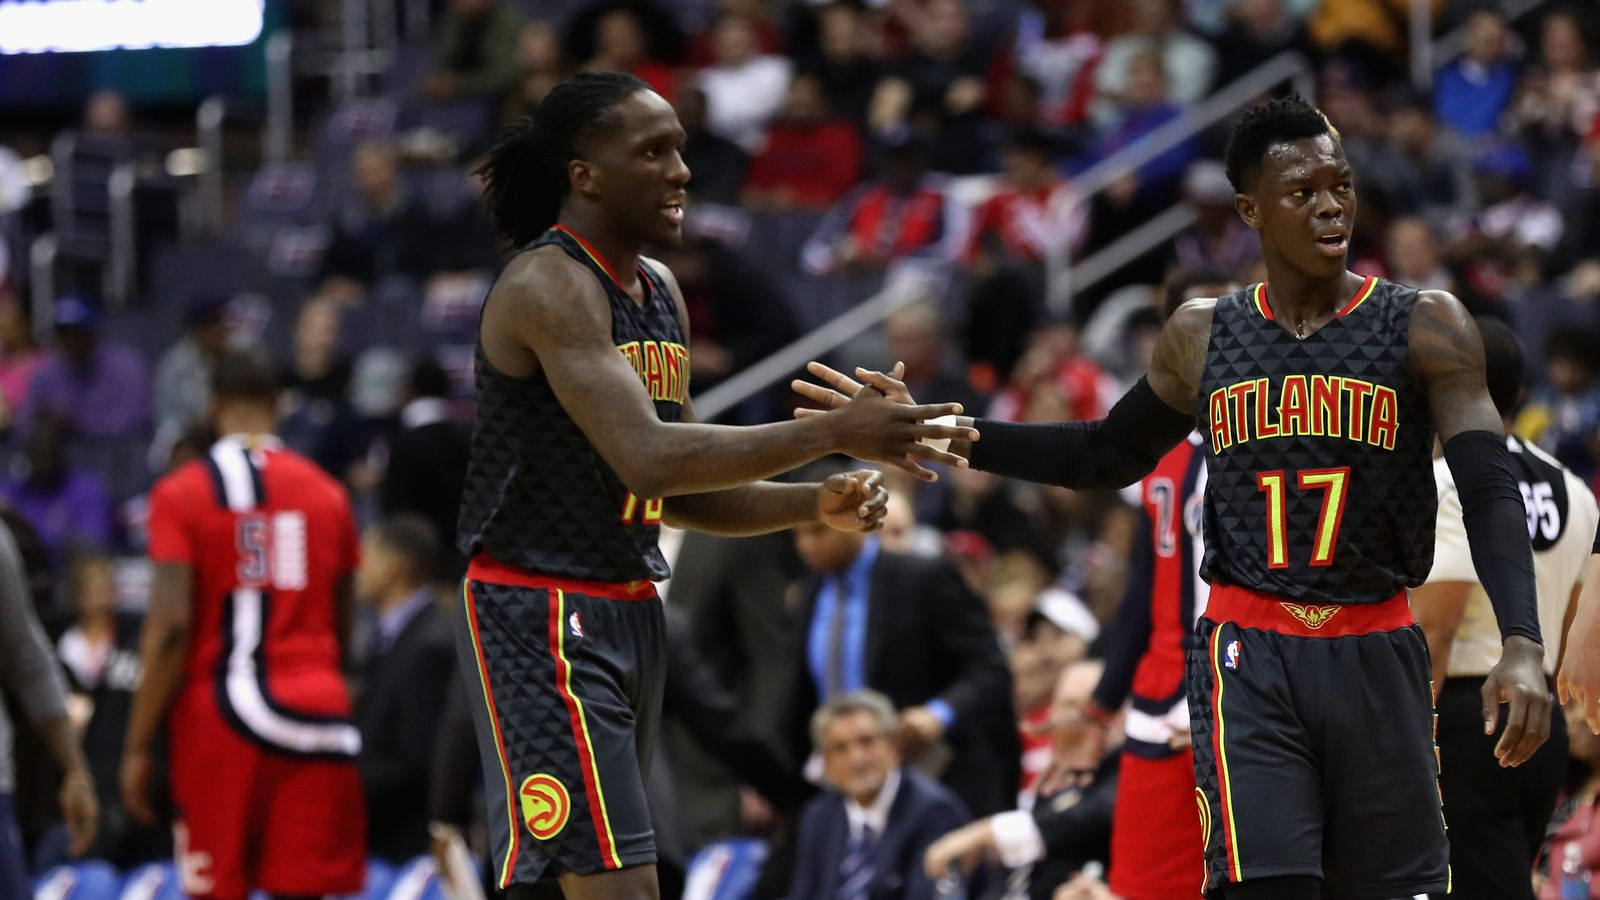 Atlanta Hawks listed with 200-1 odds to claim 2018 NBA Championship - Peachtree Hoops